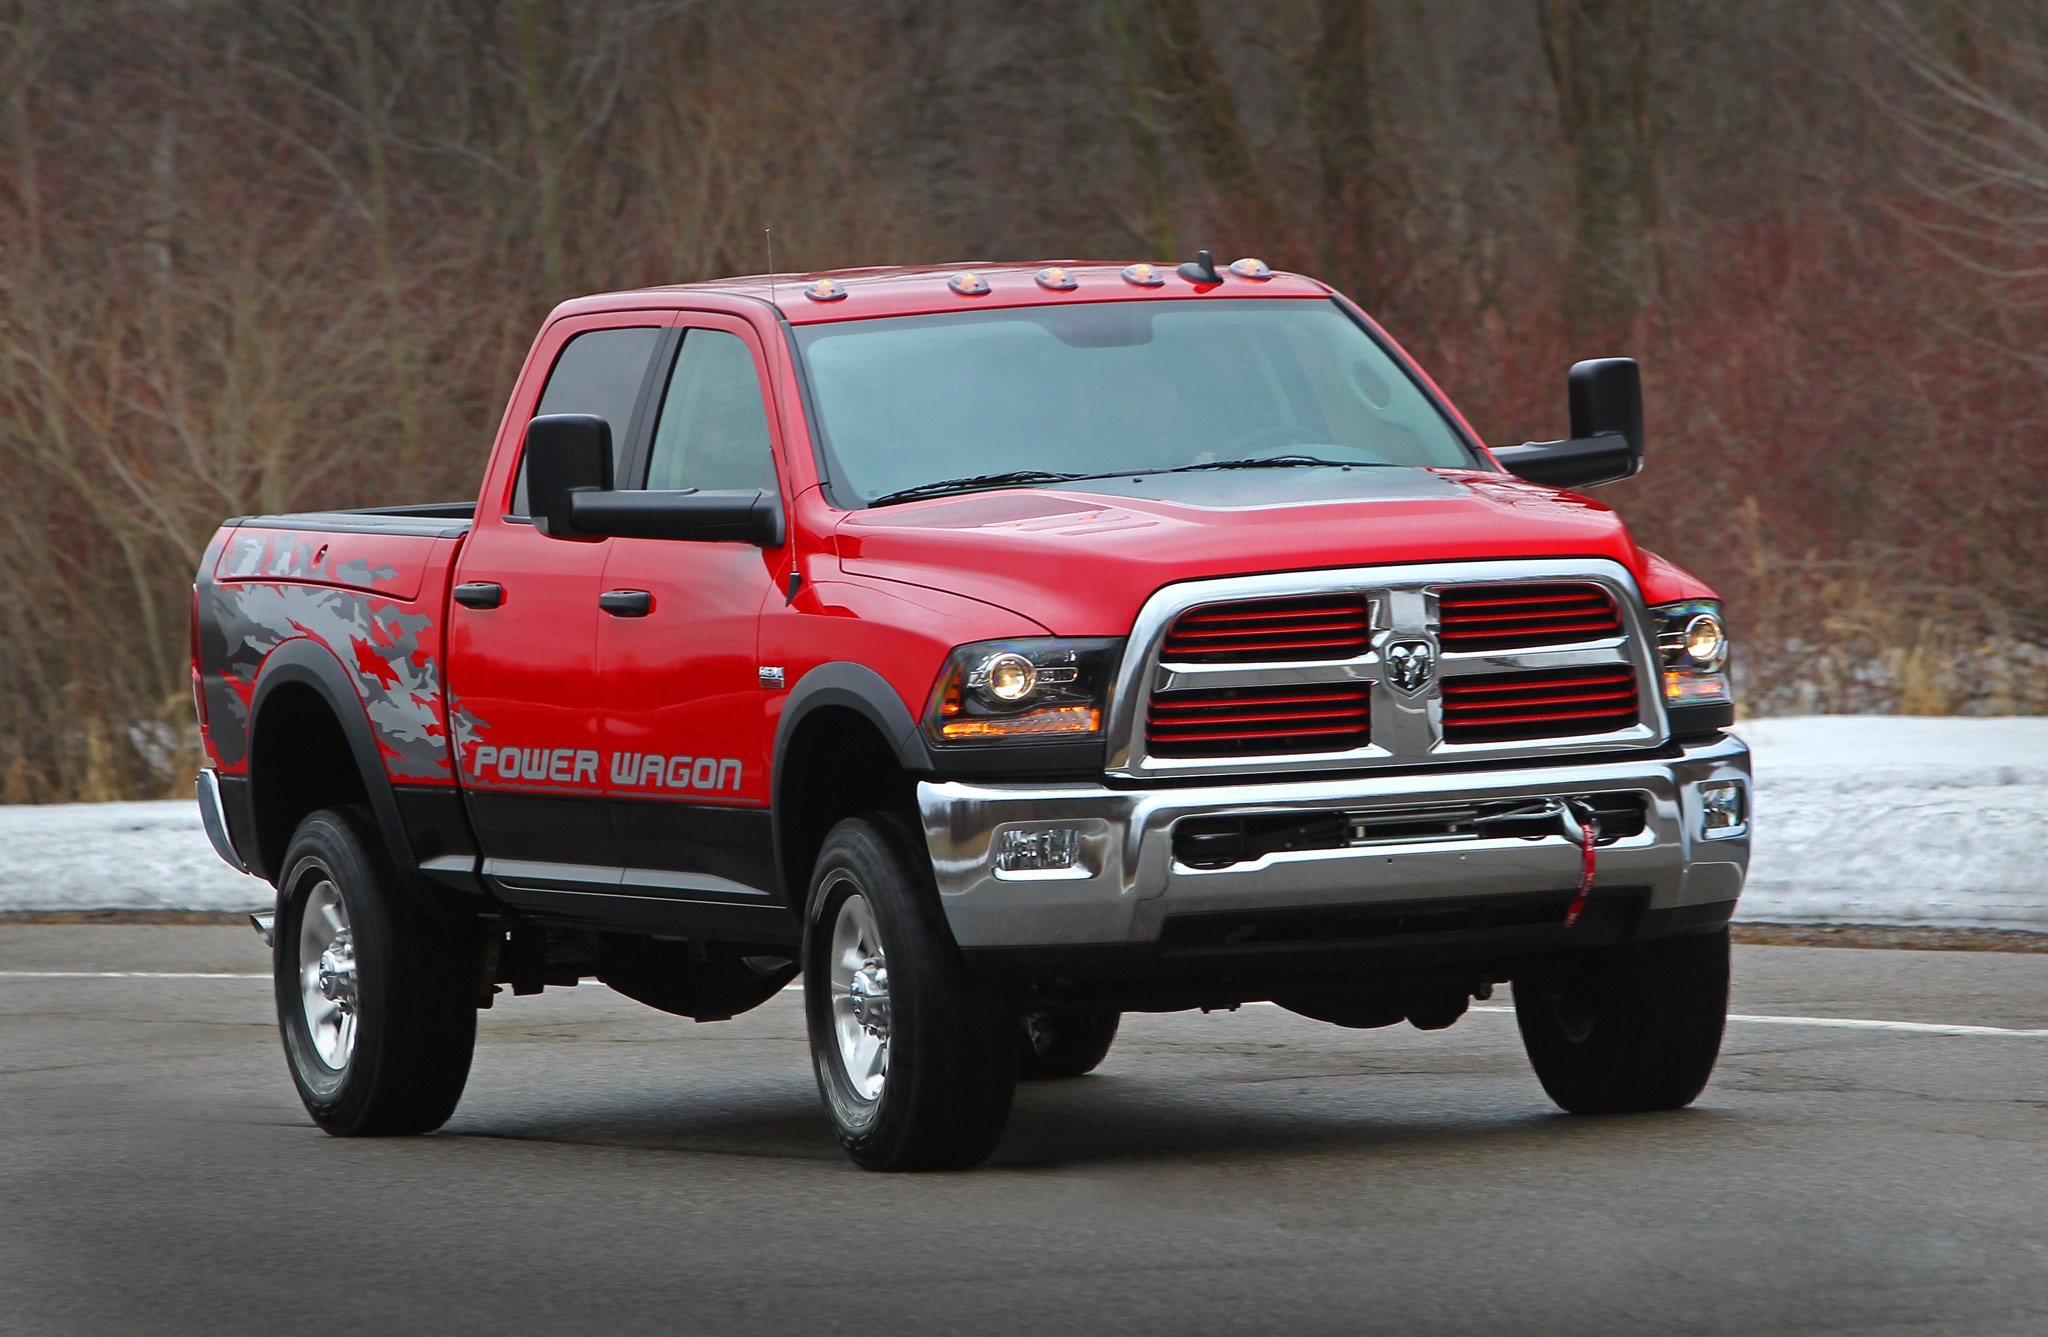 2014 Ram 2500 Power Wagon front three quarters 02